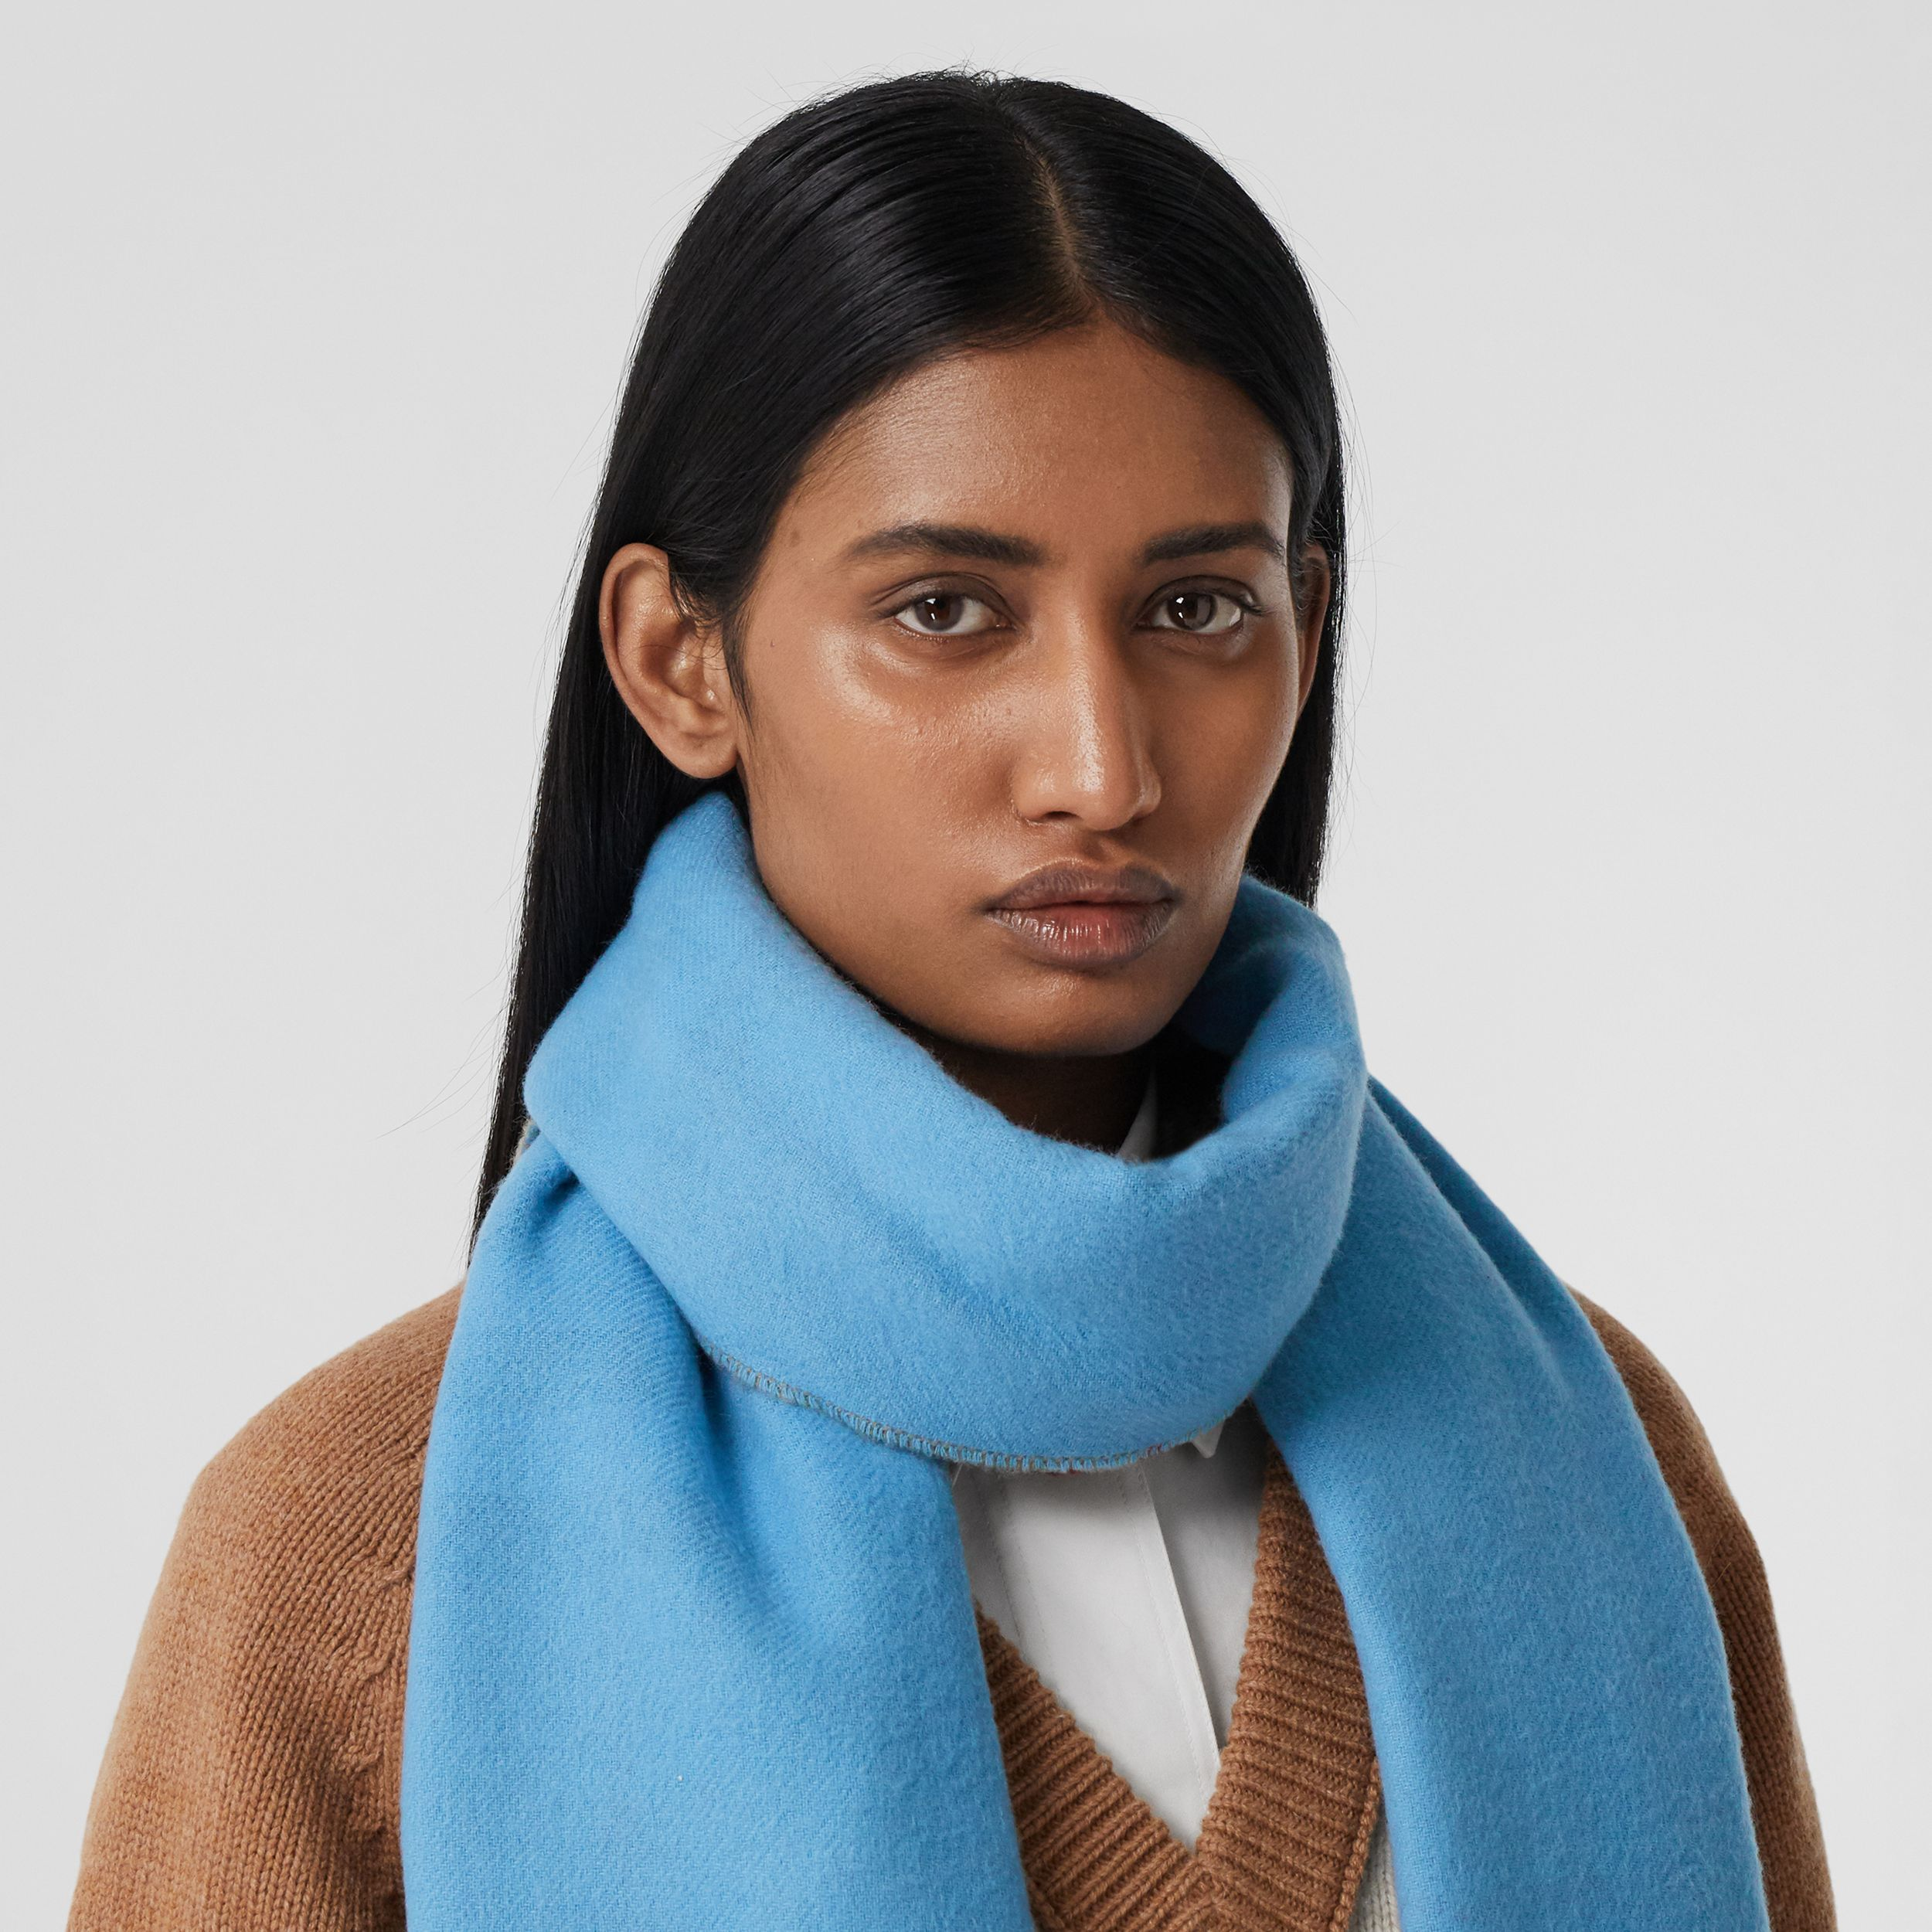 Reversible Check Cashmere Scarf in Blue Topaz | Burberry - 3